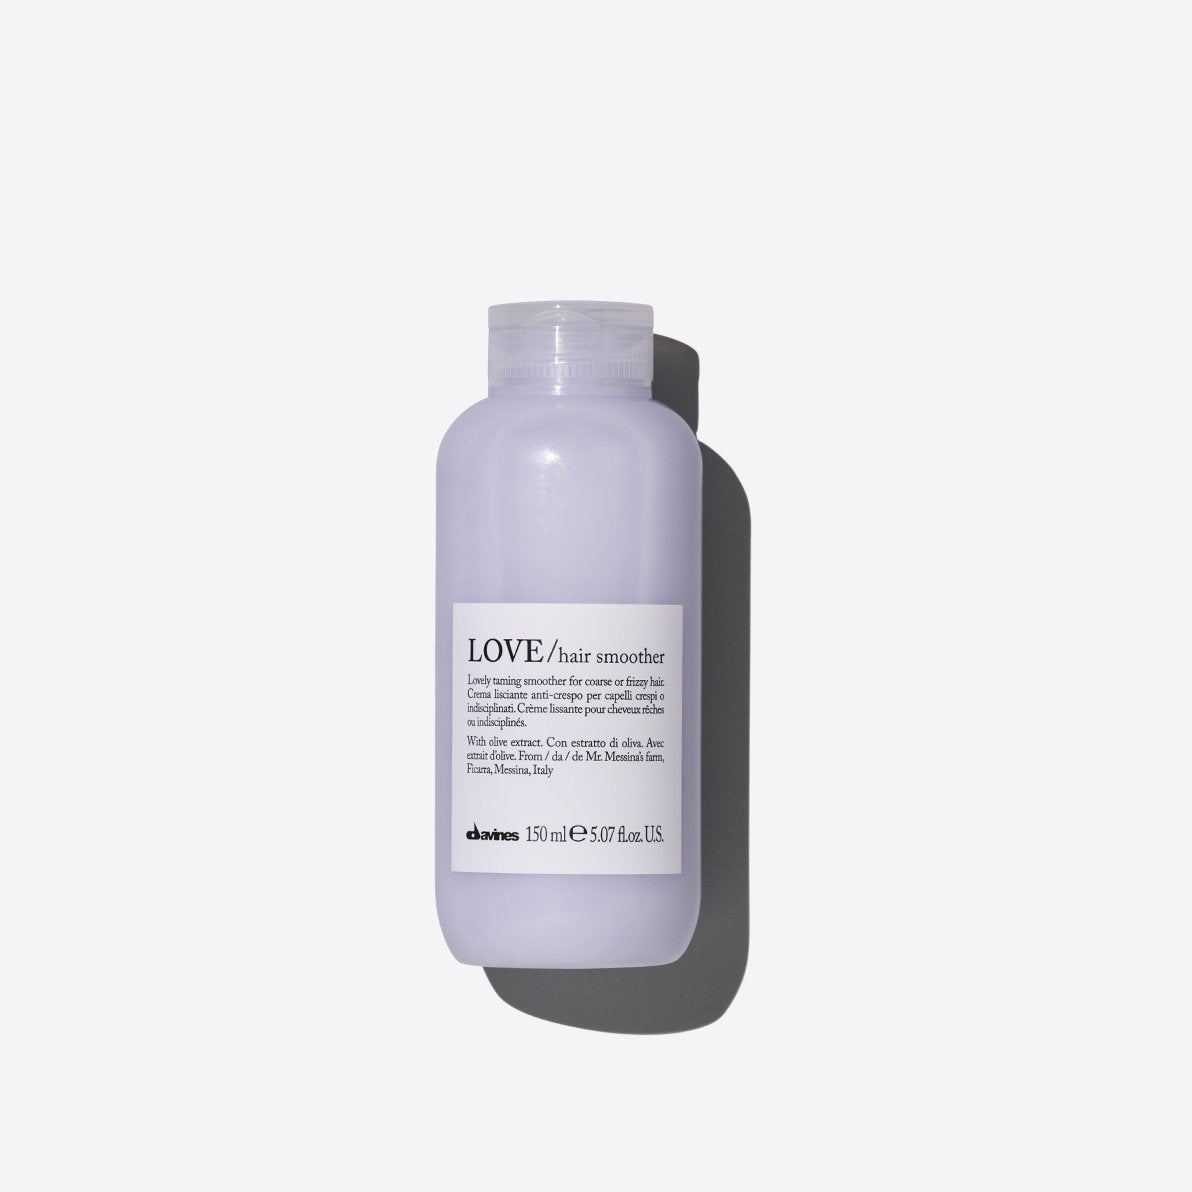 LOVE Hair Smoother by Davines